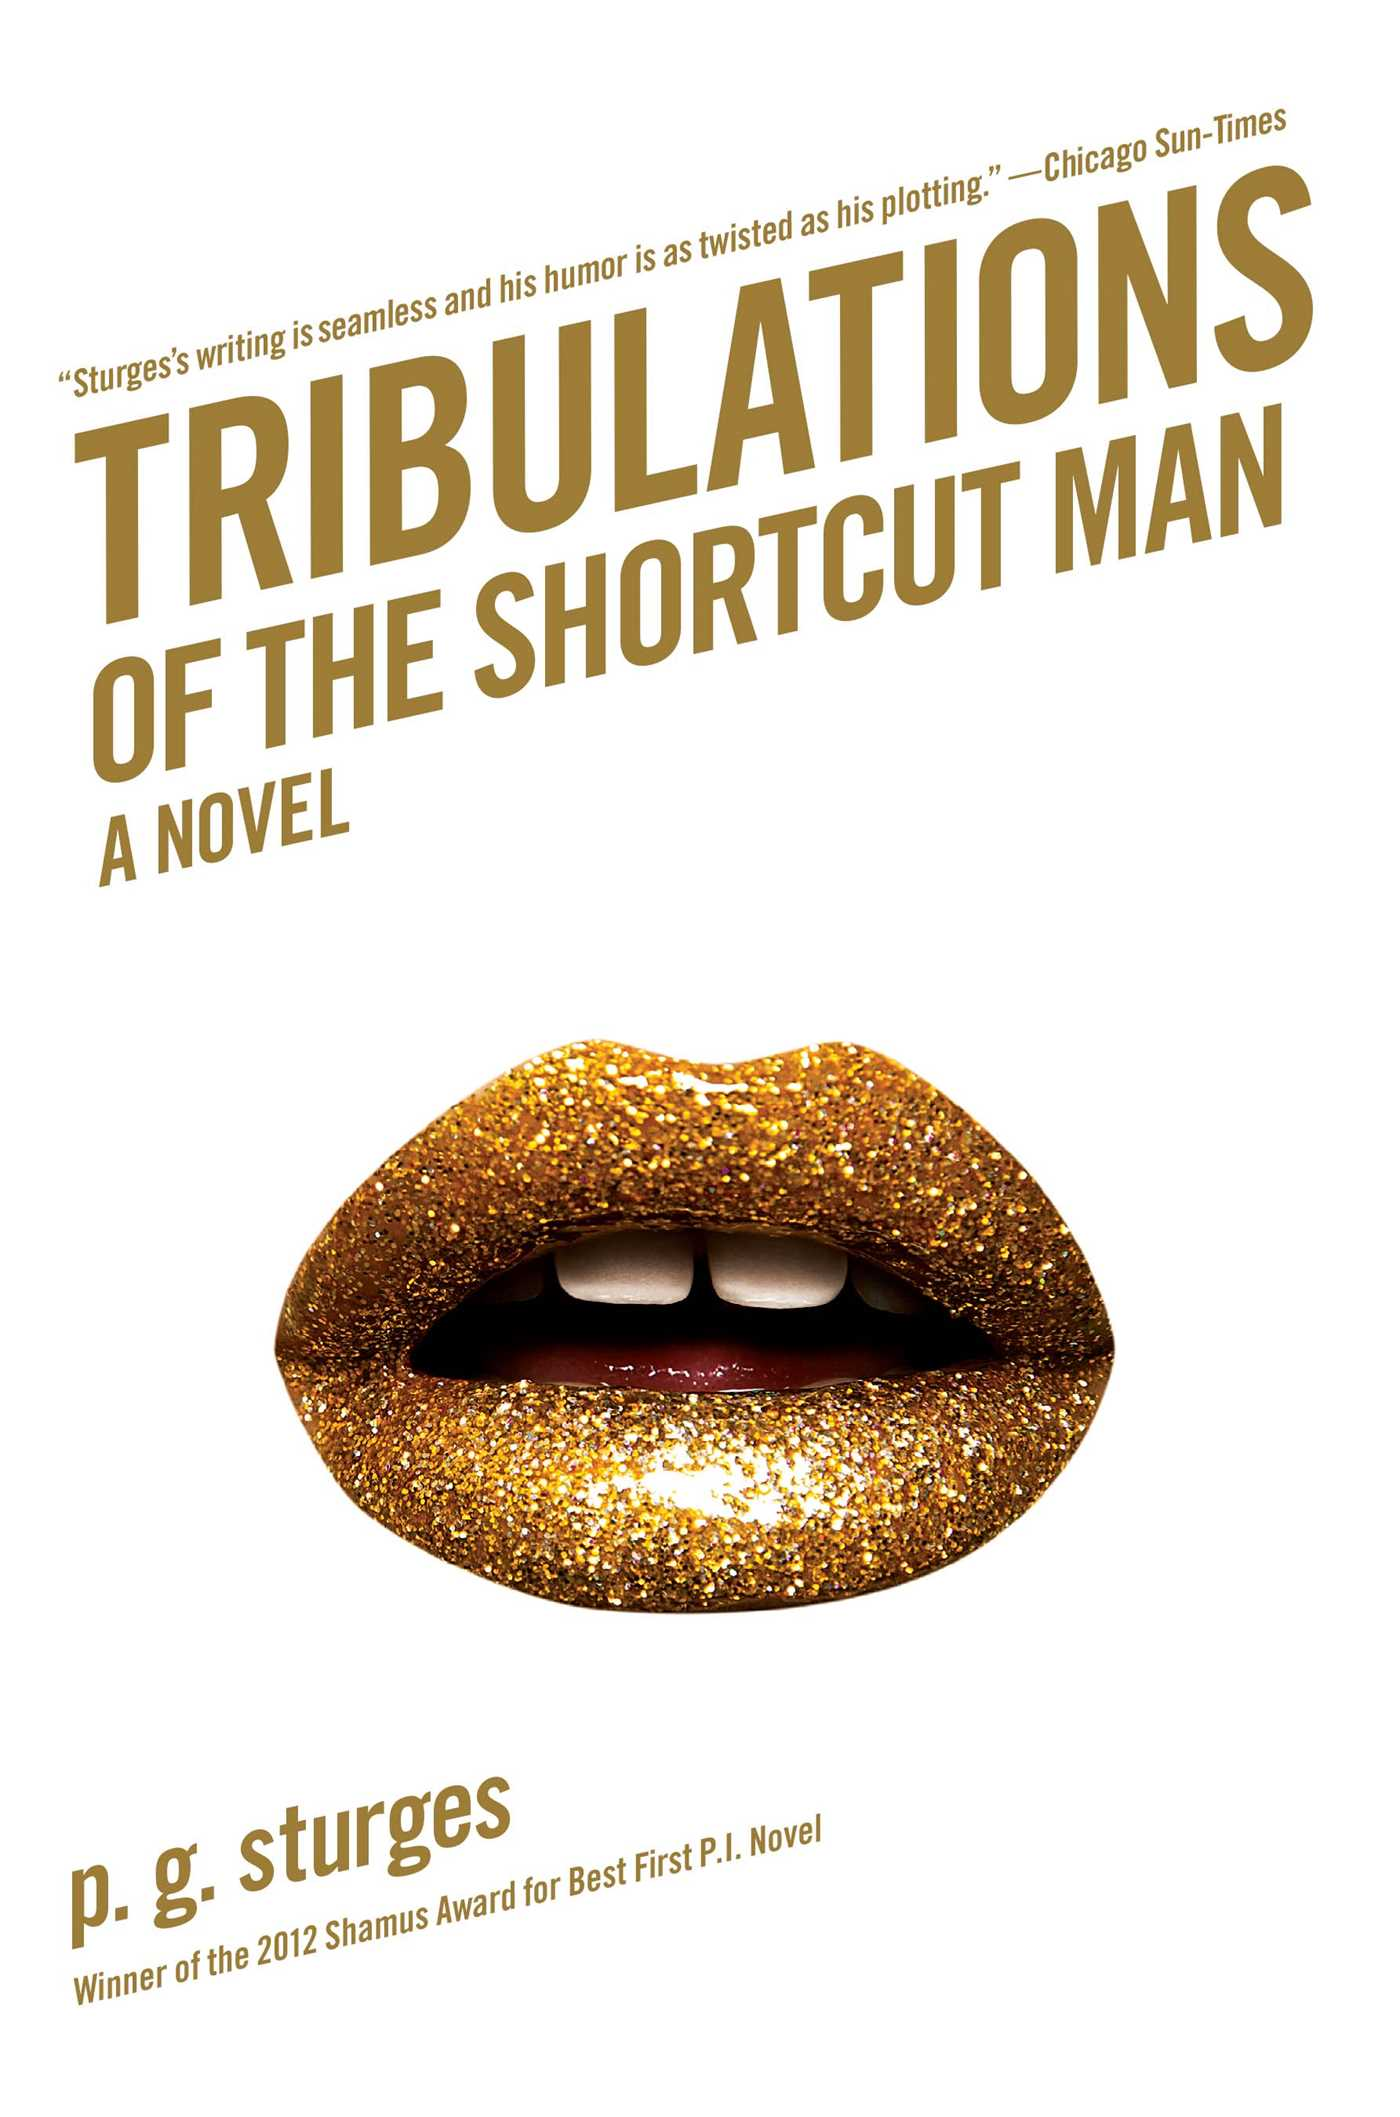 Tribulations of the shortcut man 9781439194225 hr